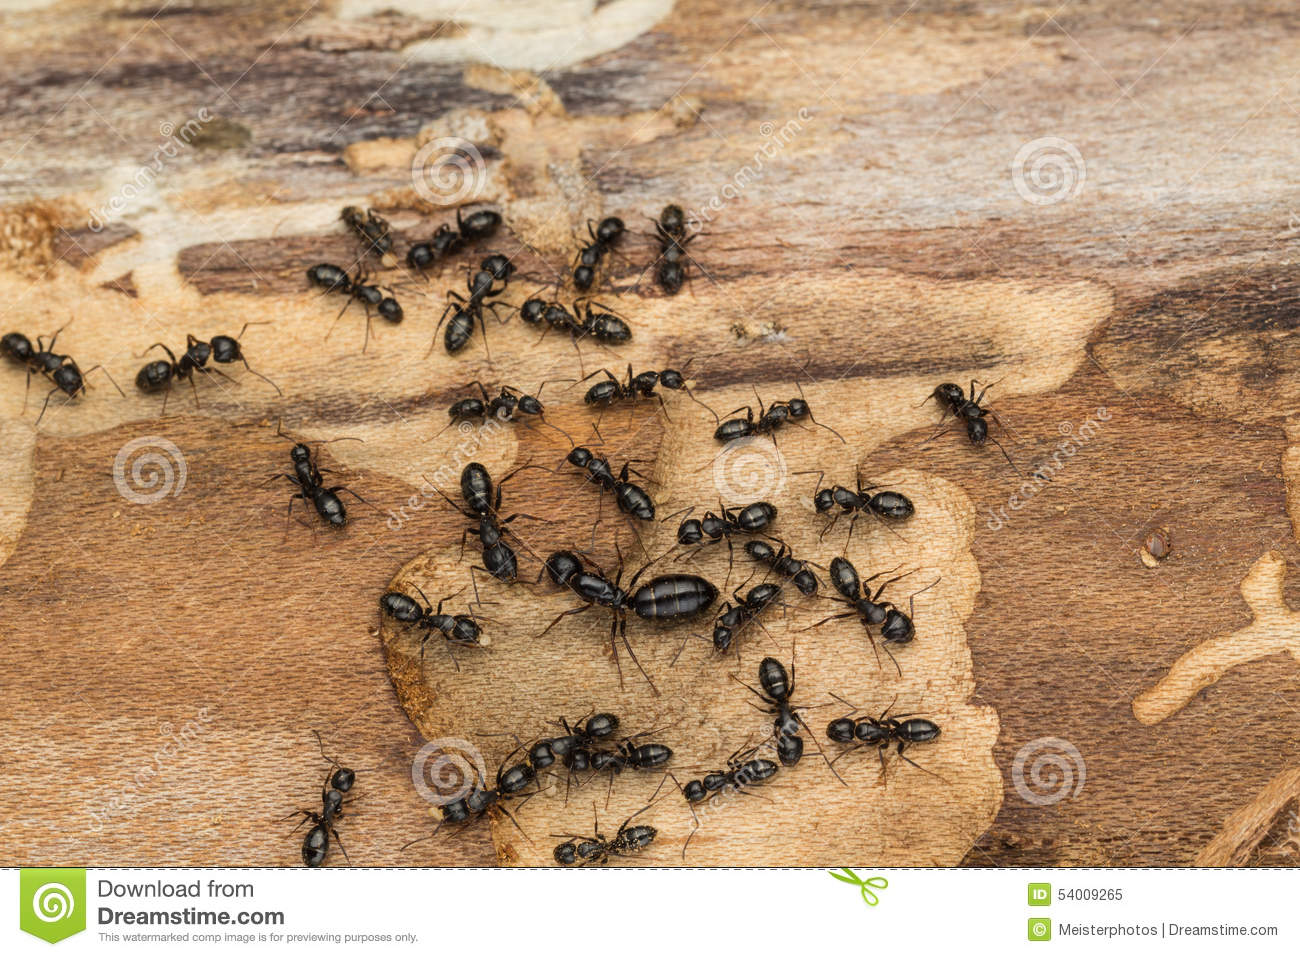 Black Ant Colony With Queen. Stock Photo.